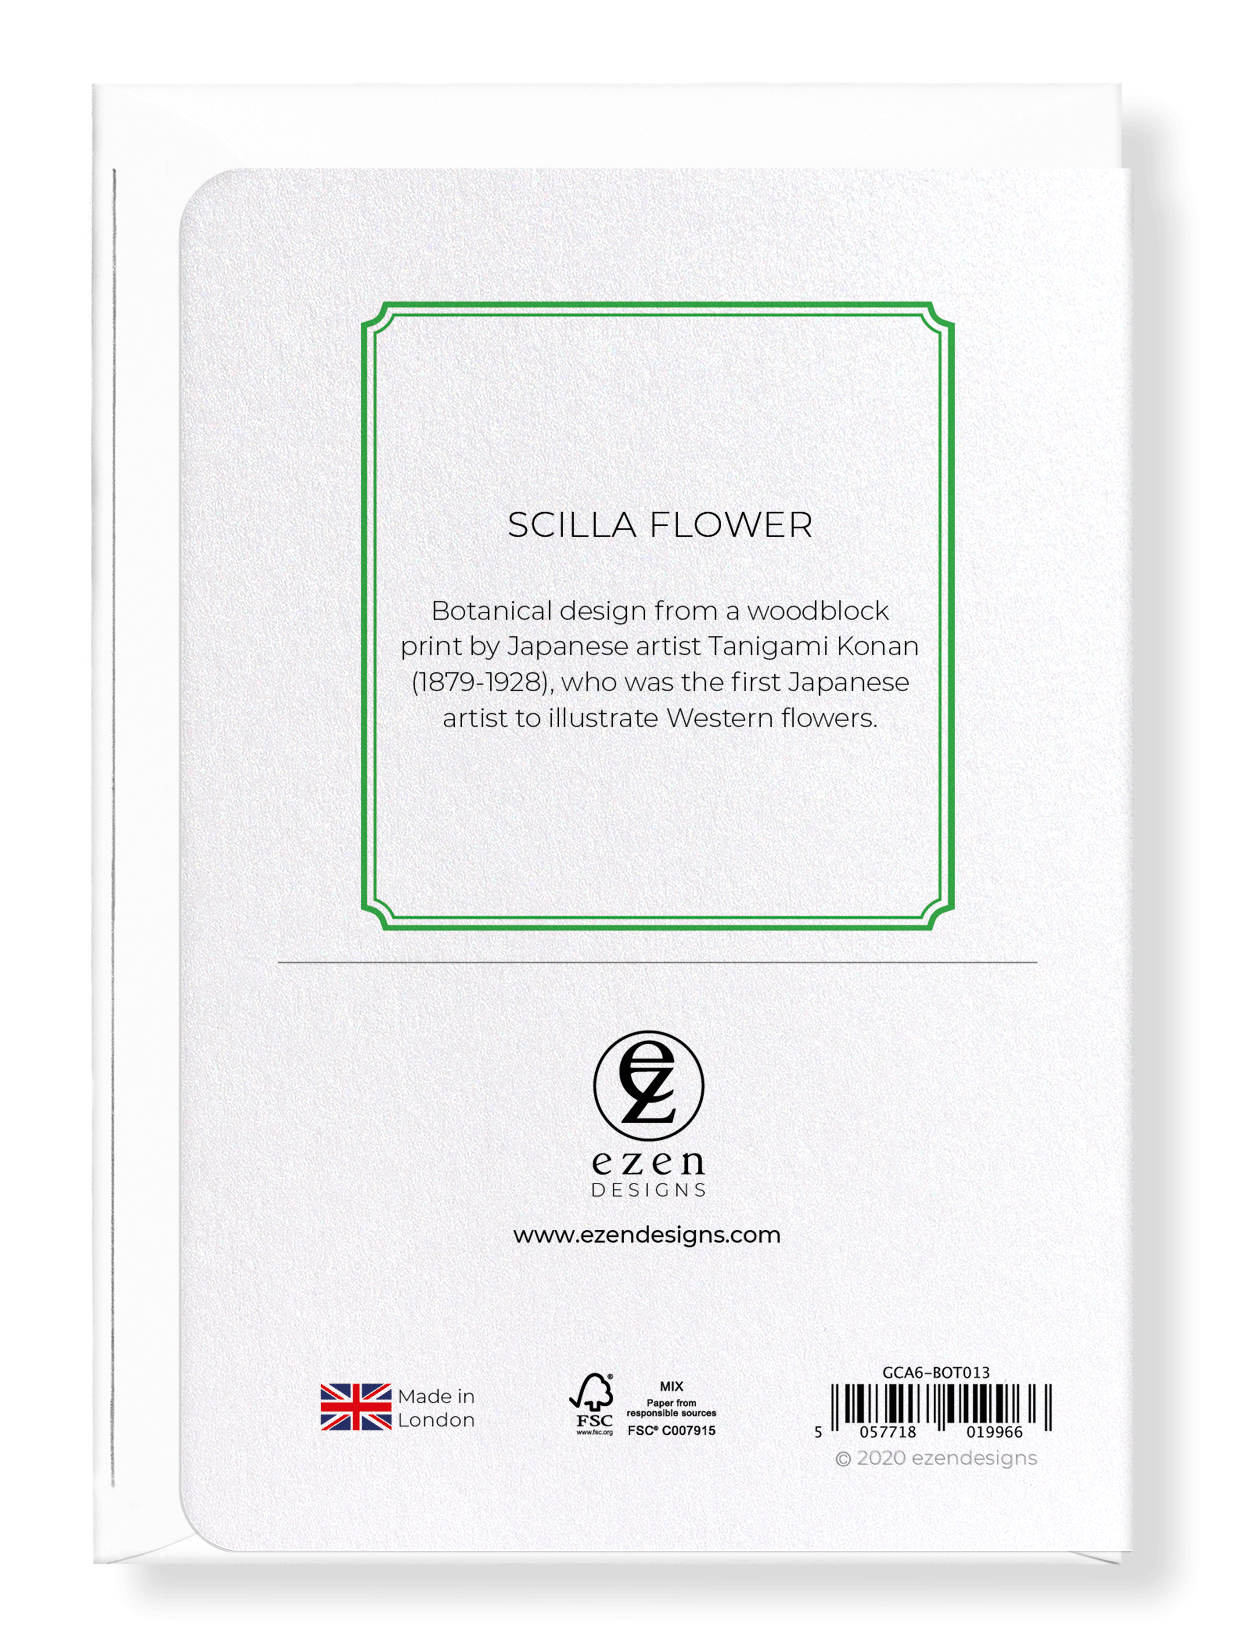 Ezen Designs - Scilla flower - Greeting Card - Back